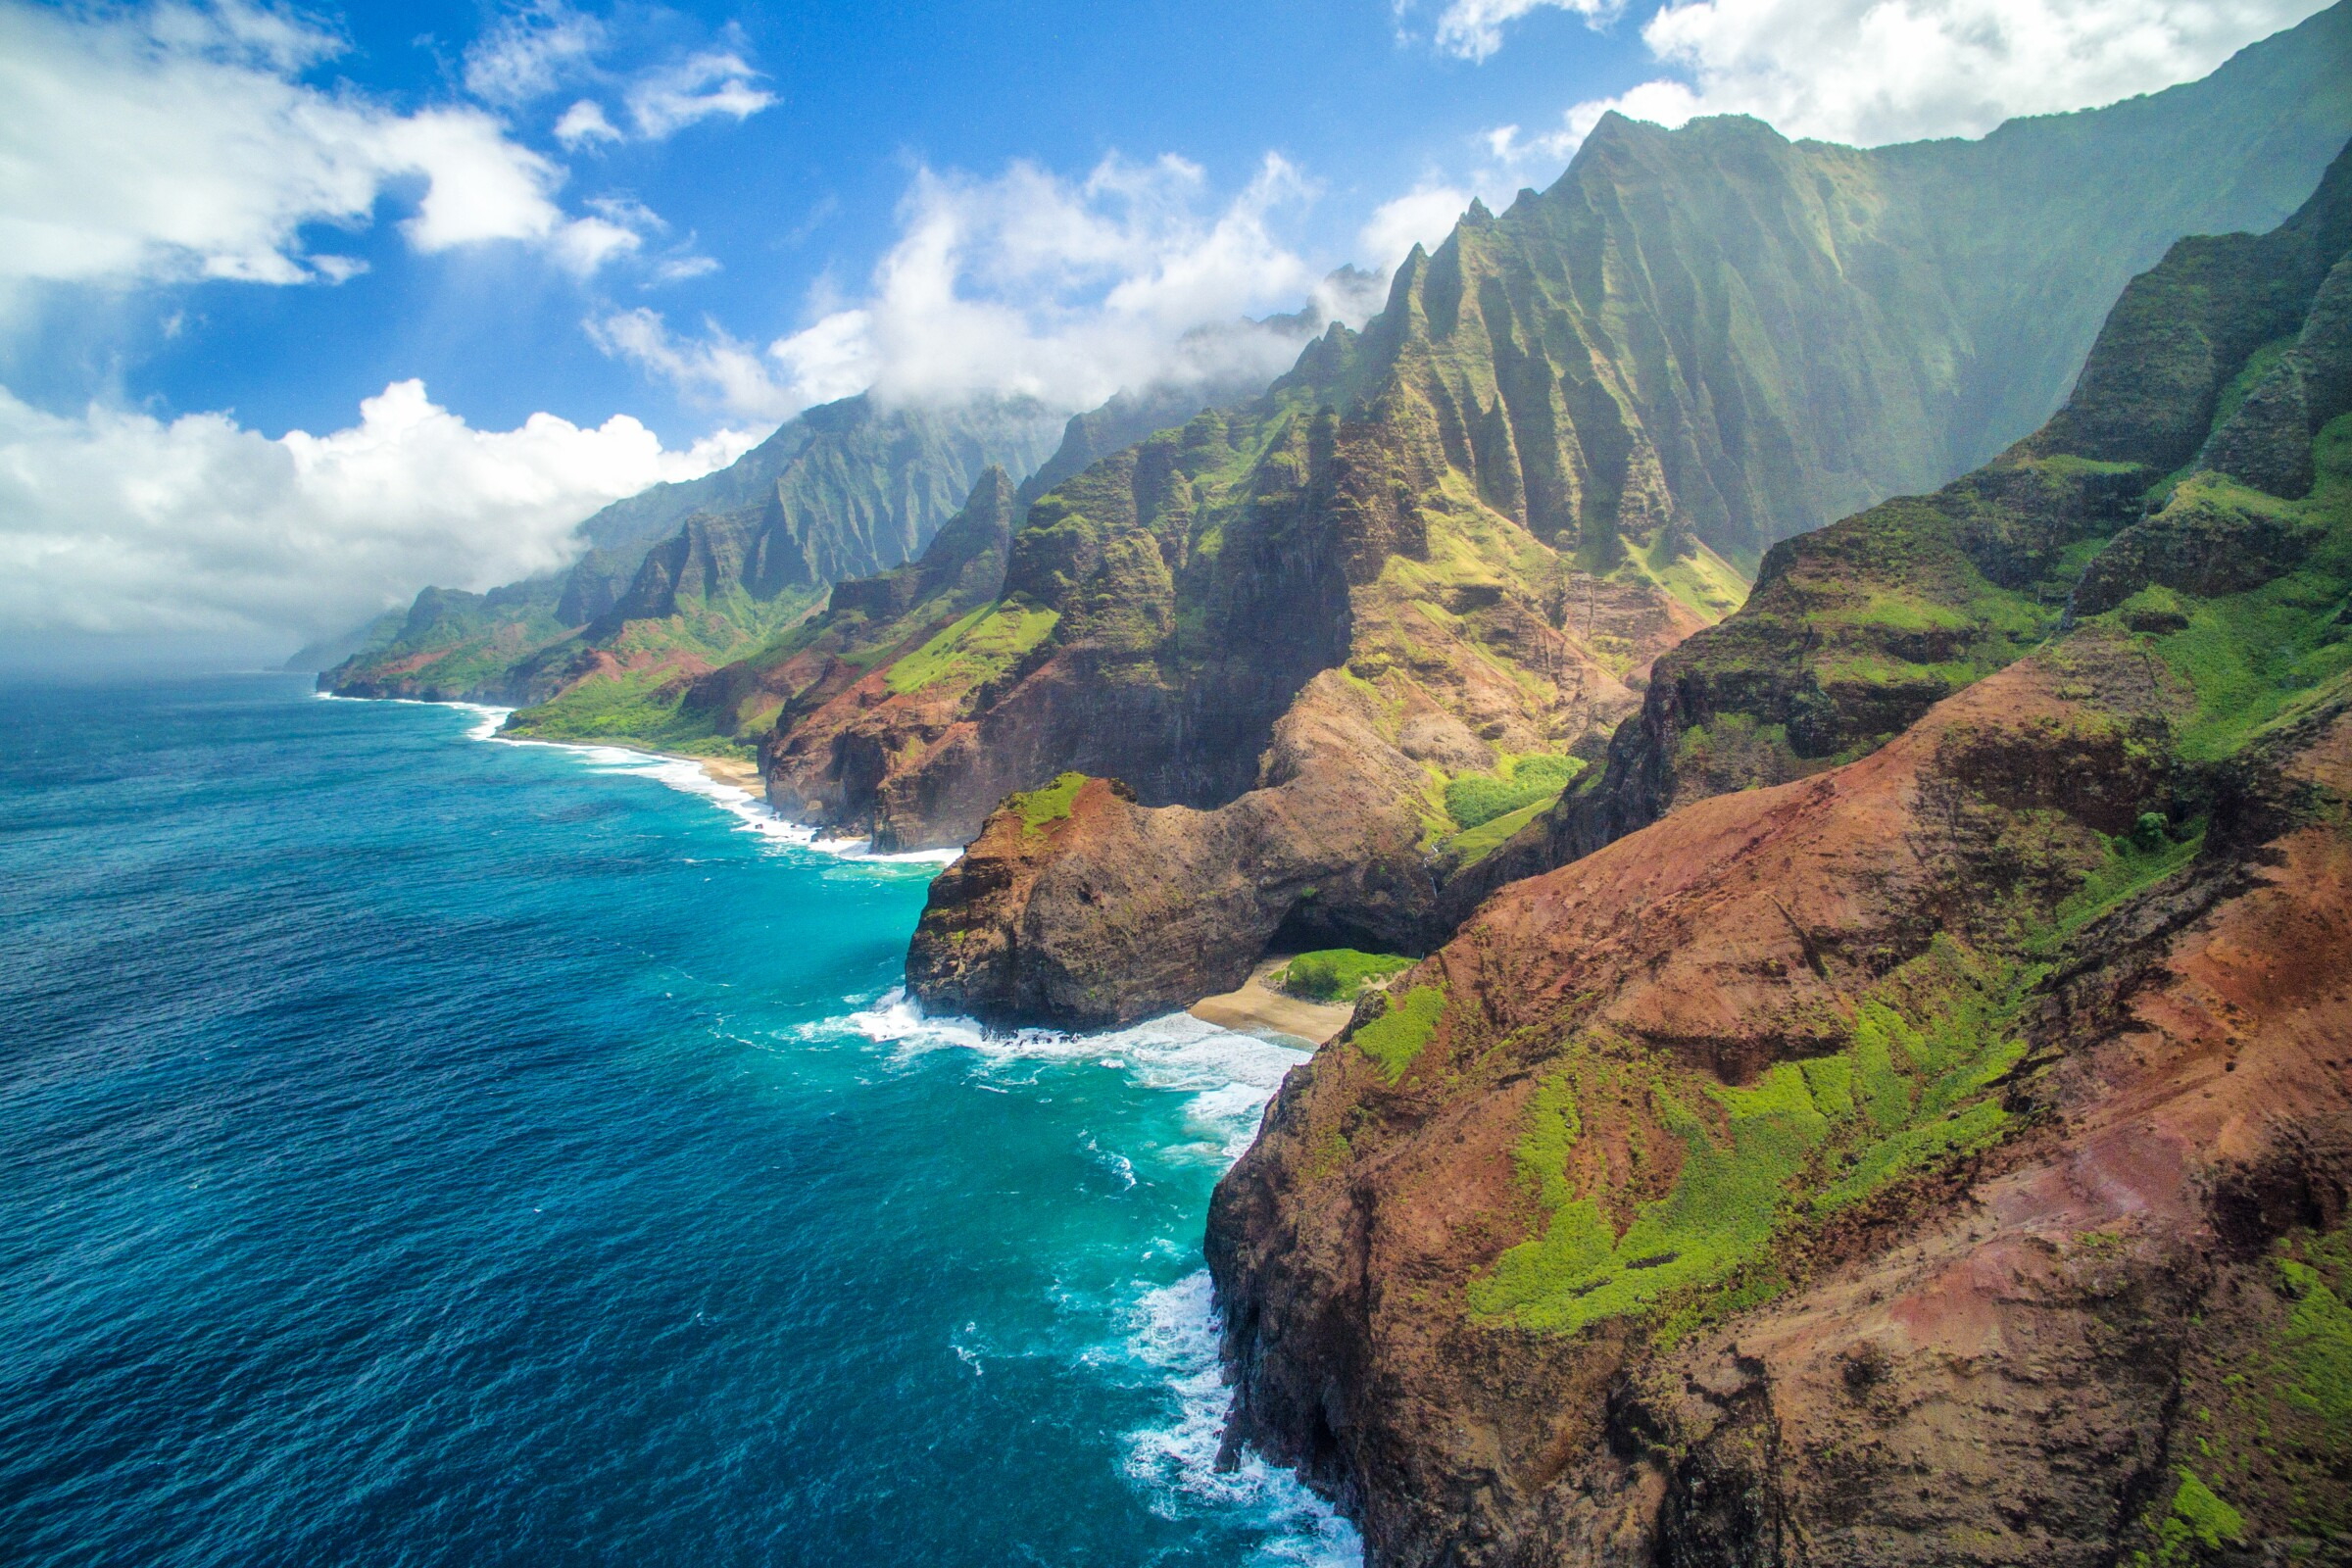 Where Is Bali Hai Island a big storm hit kauai, spawning another issue: are tourists